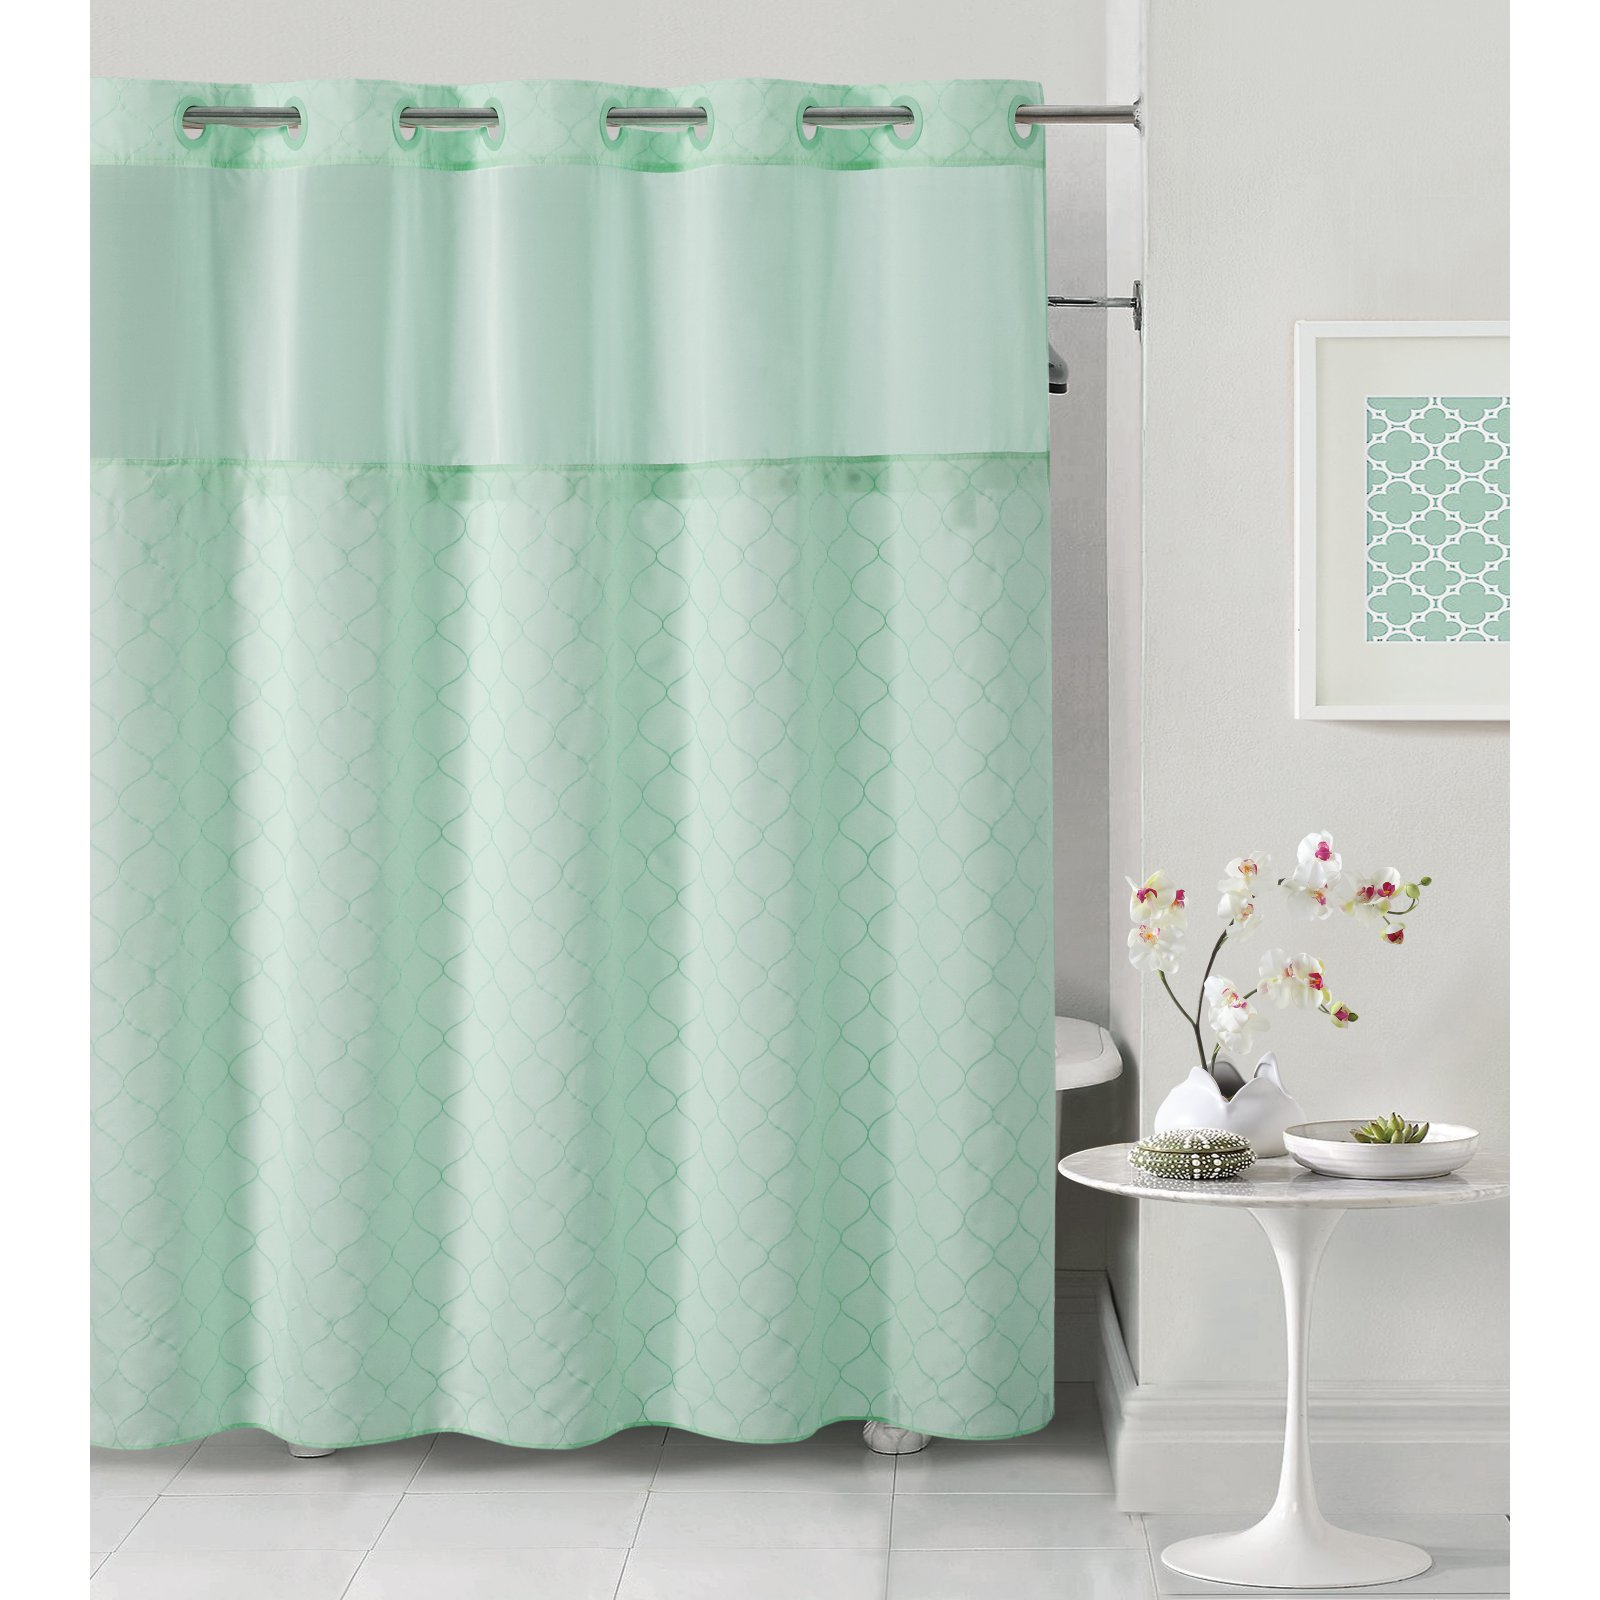 Hookless Mosaic Shower Curtain With Snap On Liner Hookless